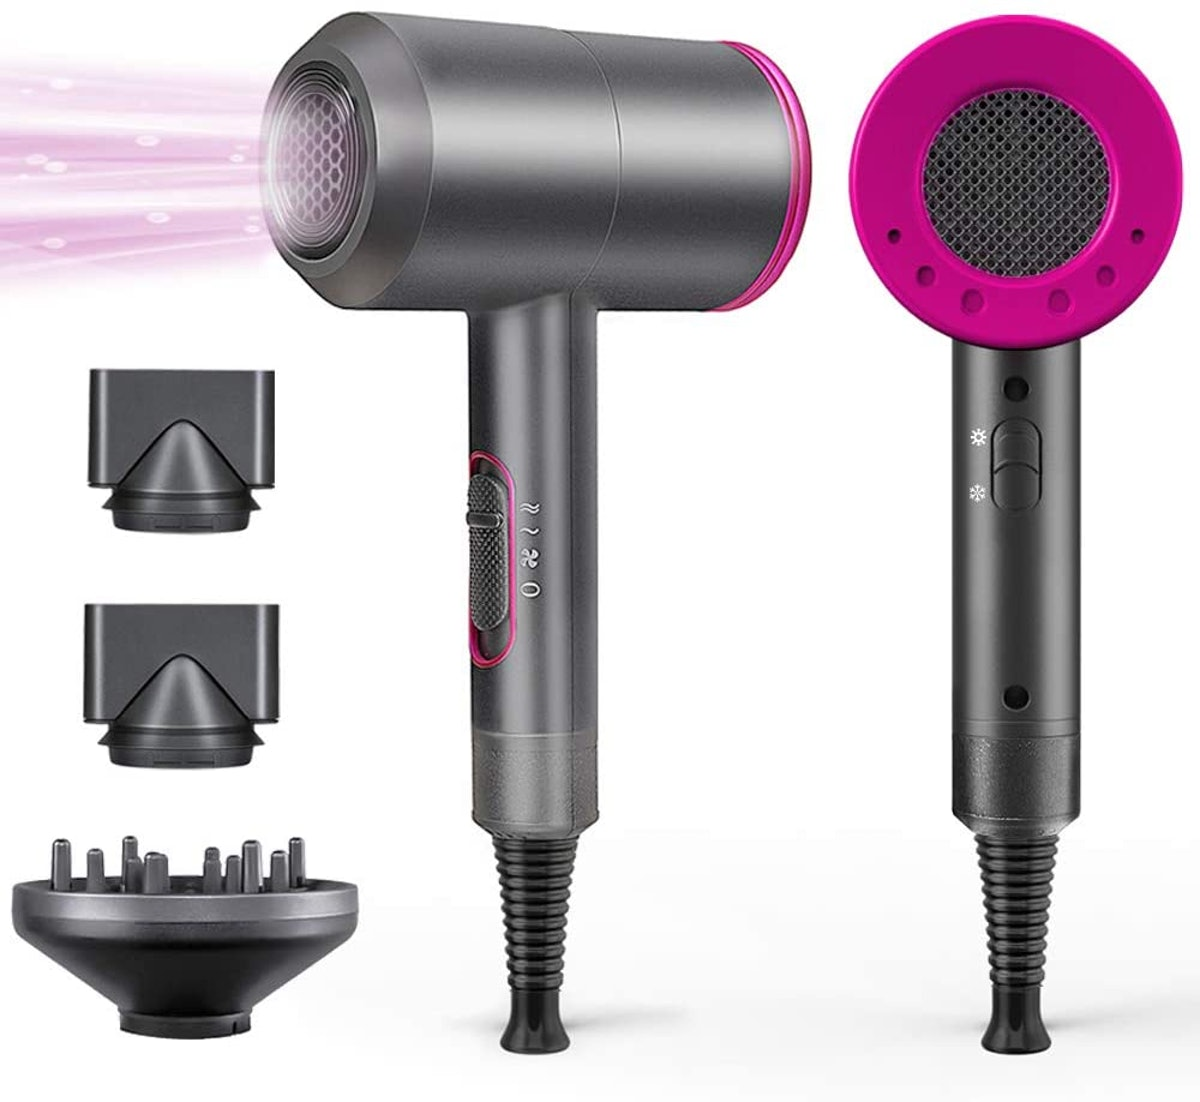 LPINYE Professional Hair Dryer With Diffuser